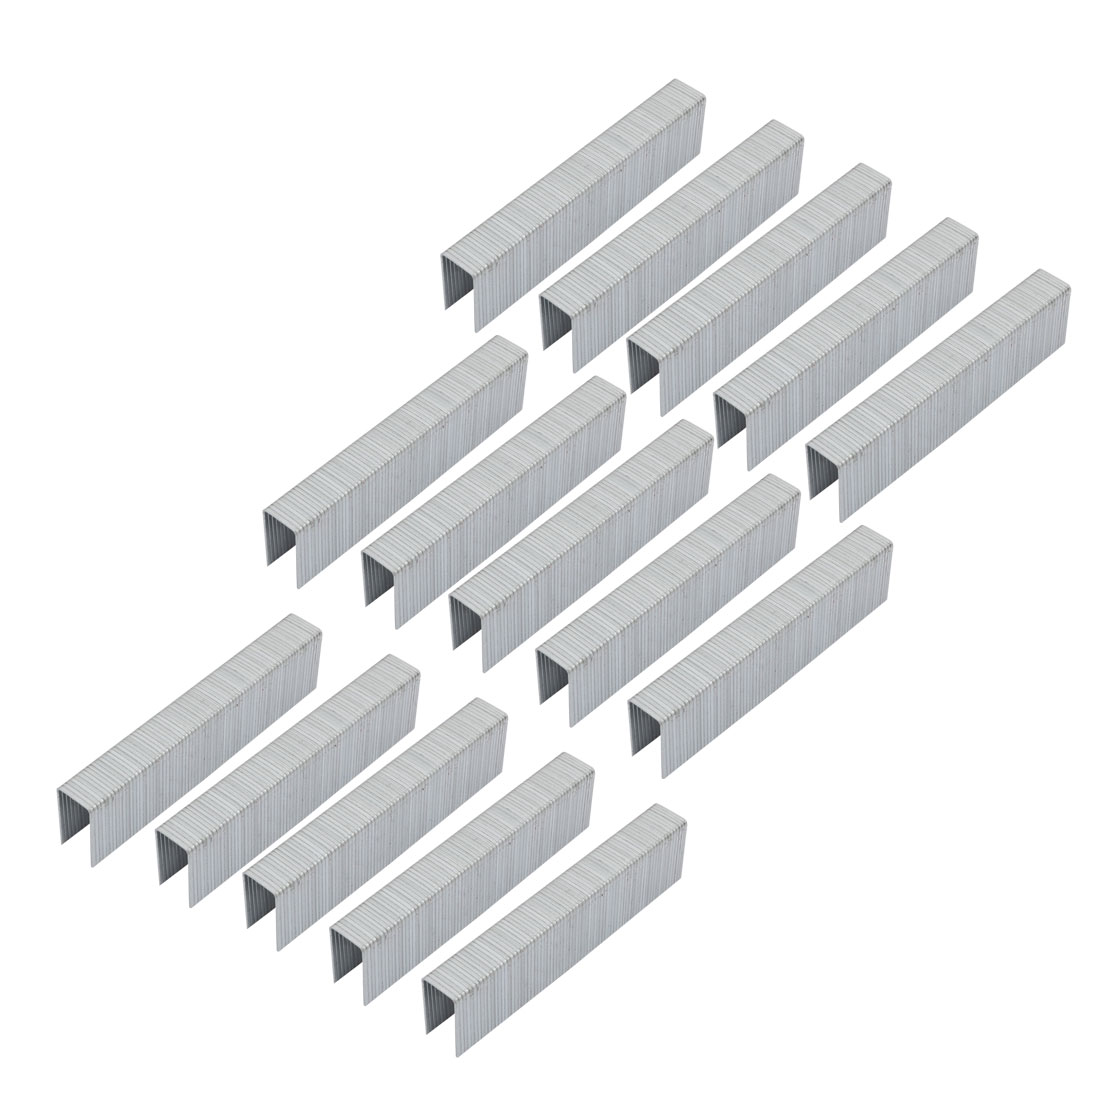 83mmx11mmx20mm Carbon Steel Staple 1500pcs for 1022J Staple Gun by Unique-Bargains